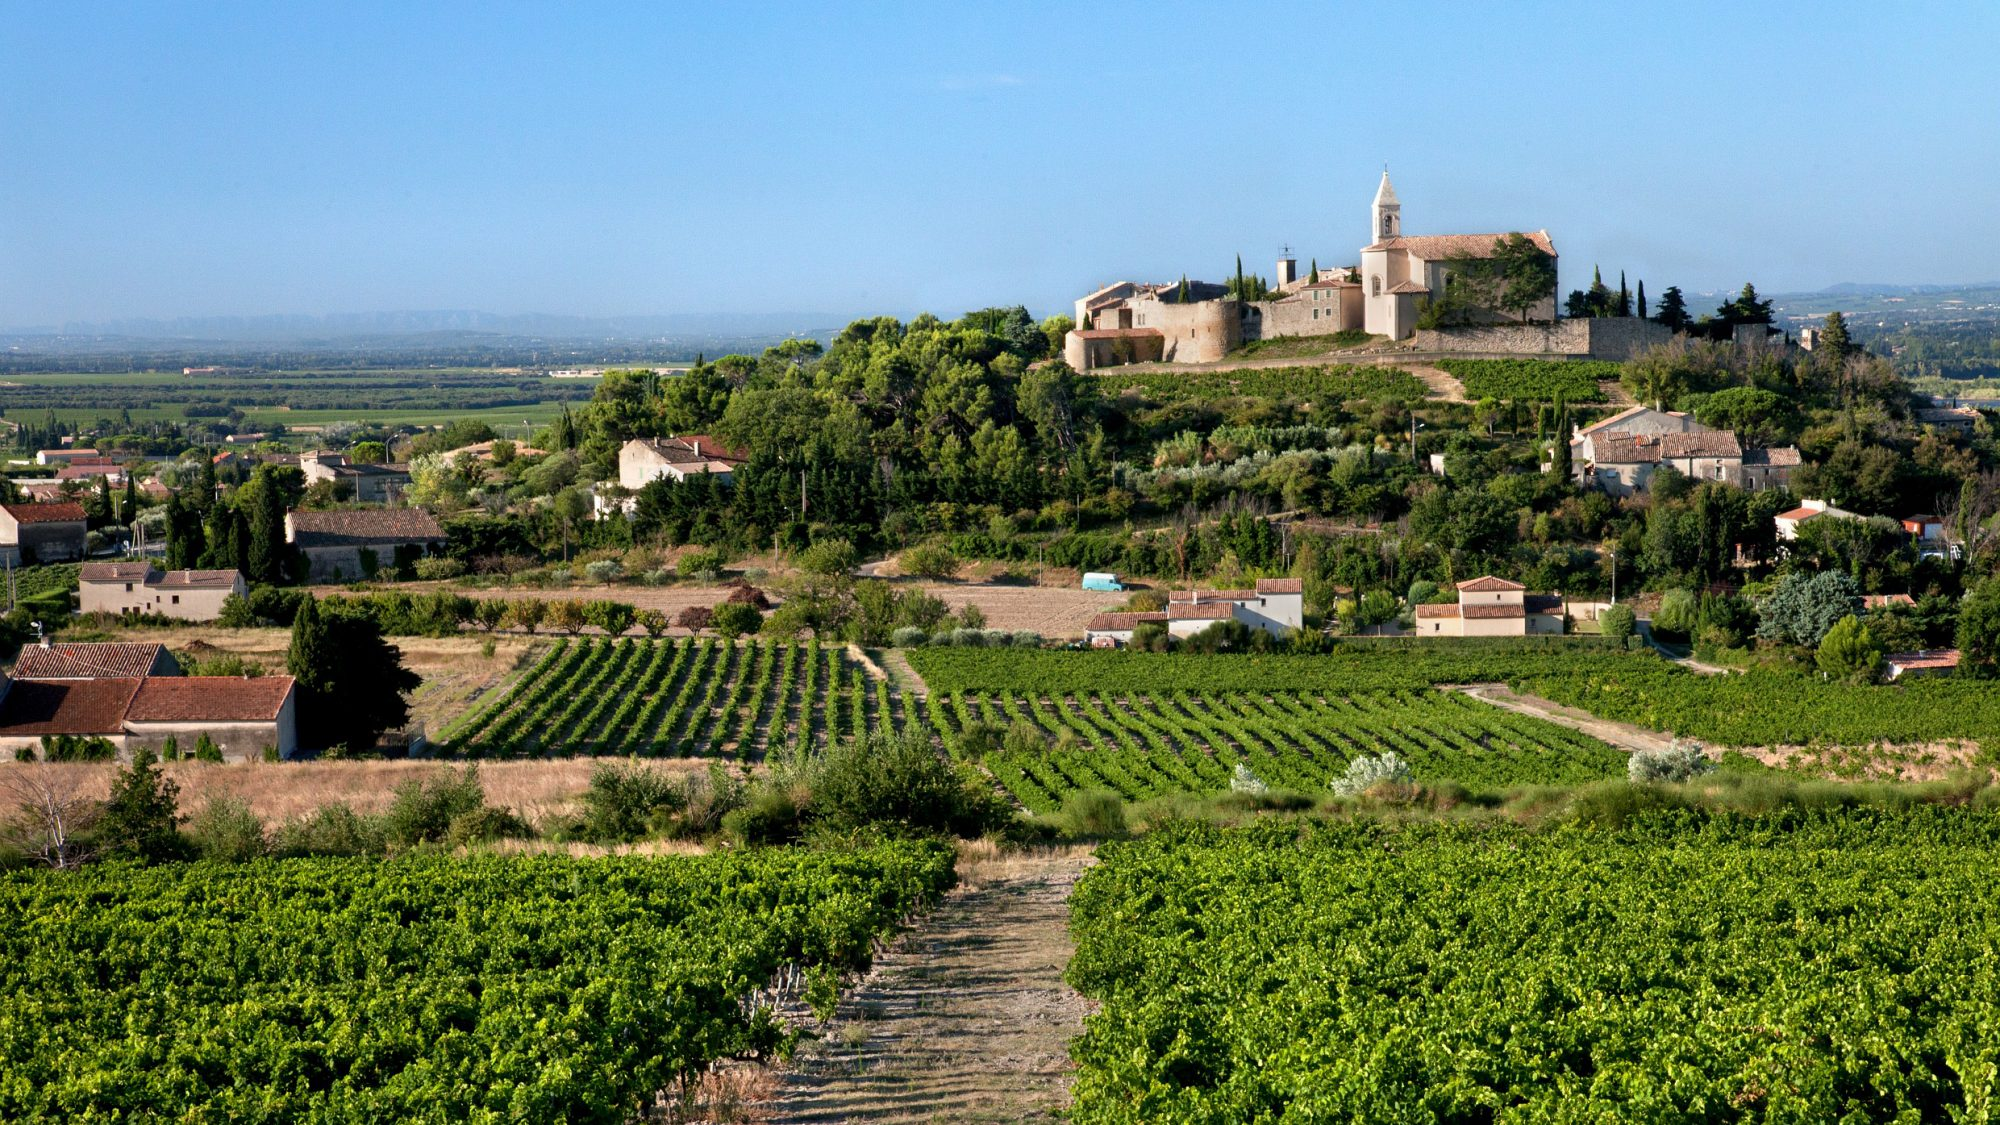 Cairanne Gets Its Cru On